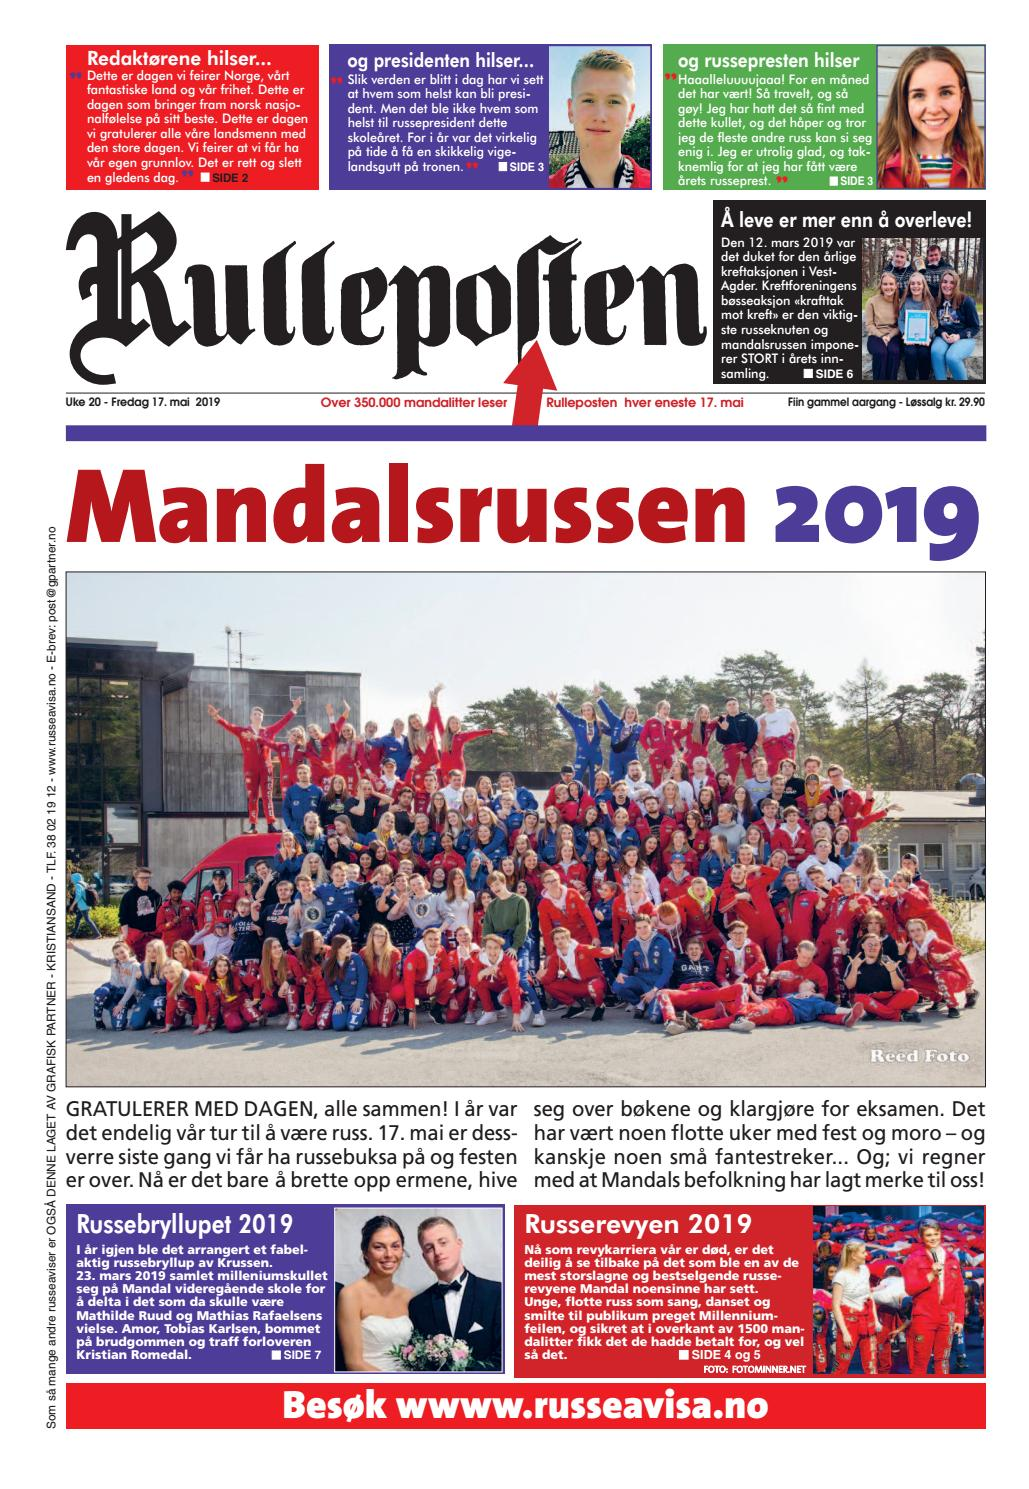 fd1003e3 Russeavisa for mandalsrussen 2019. by Grafisk Partner - issuu